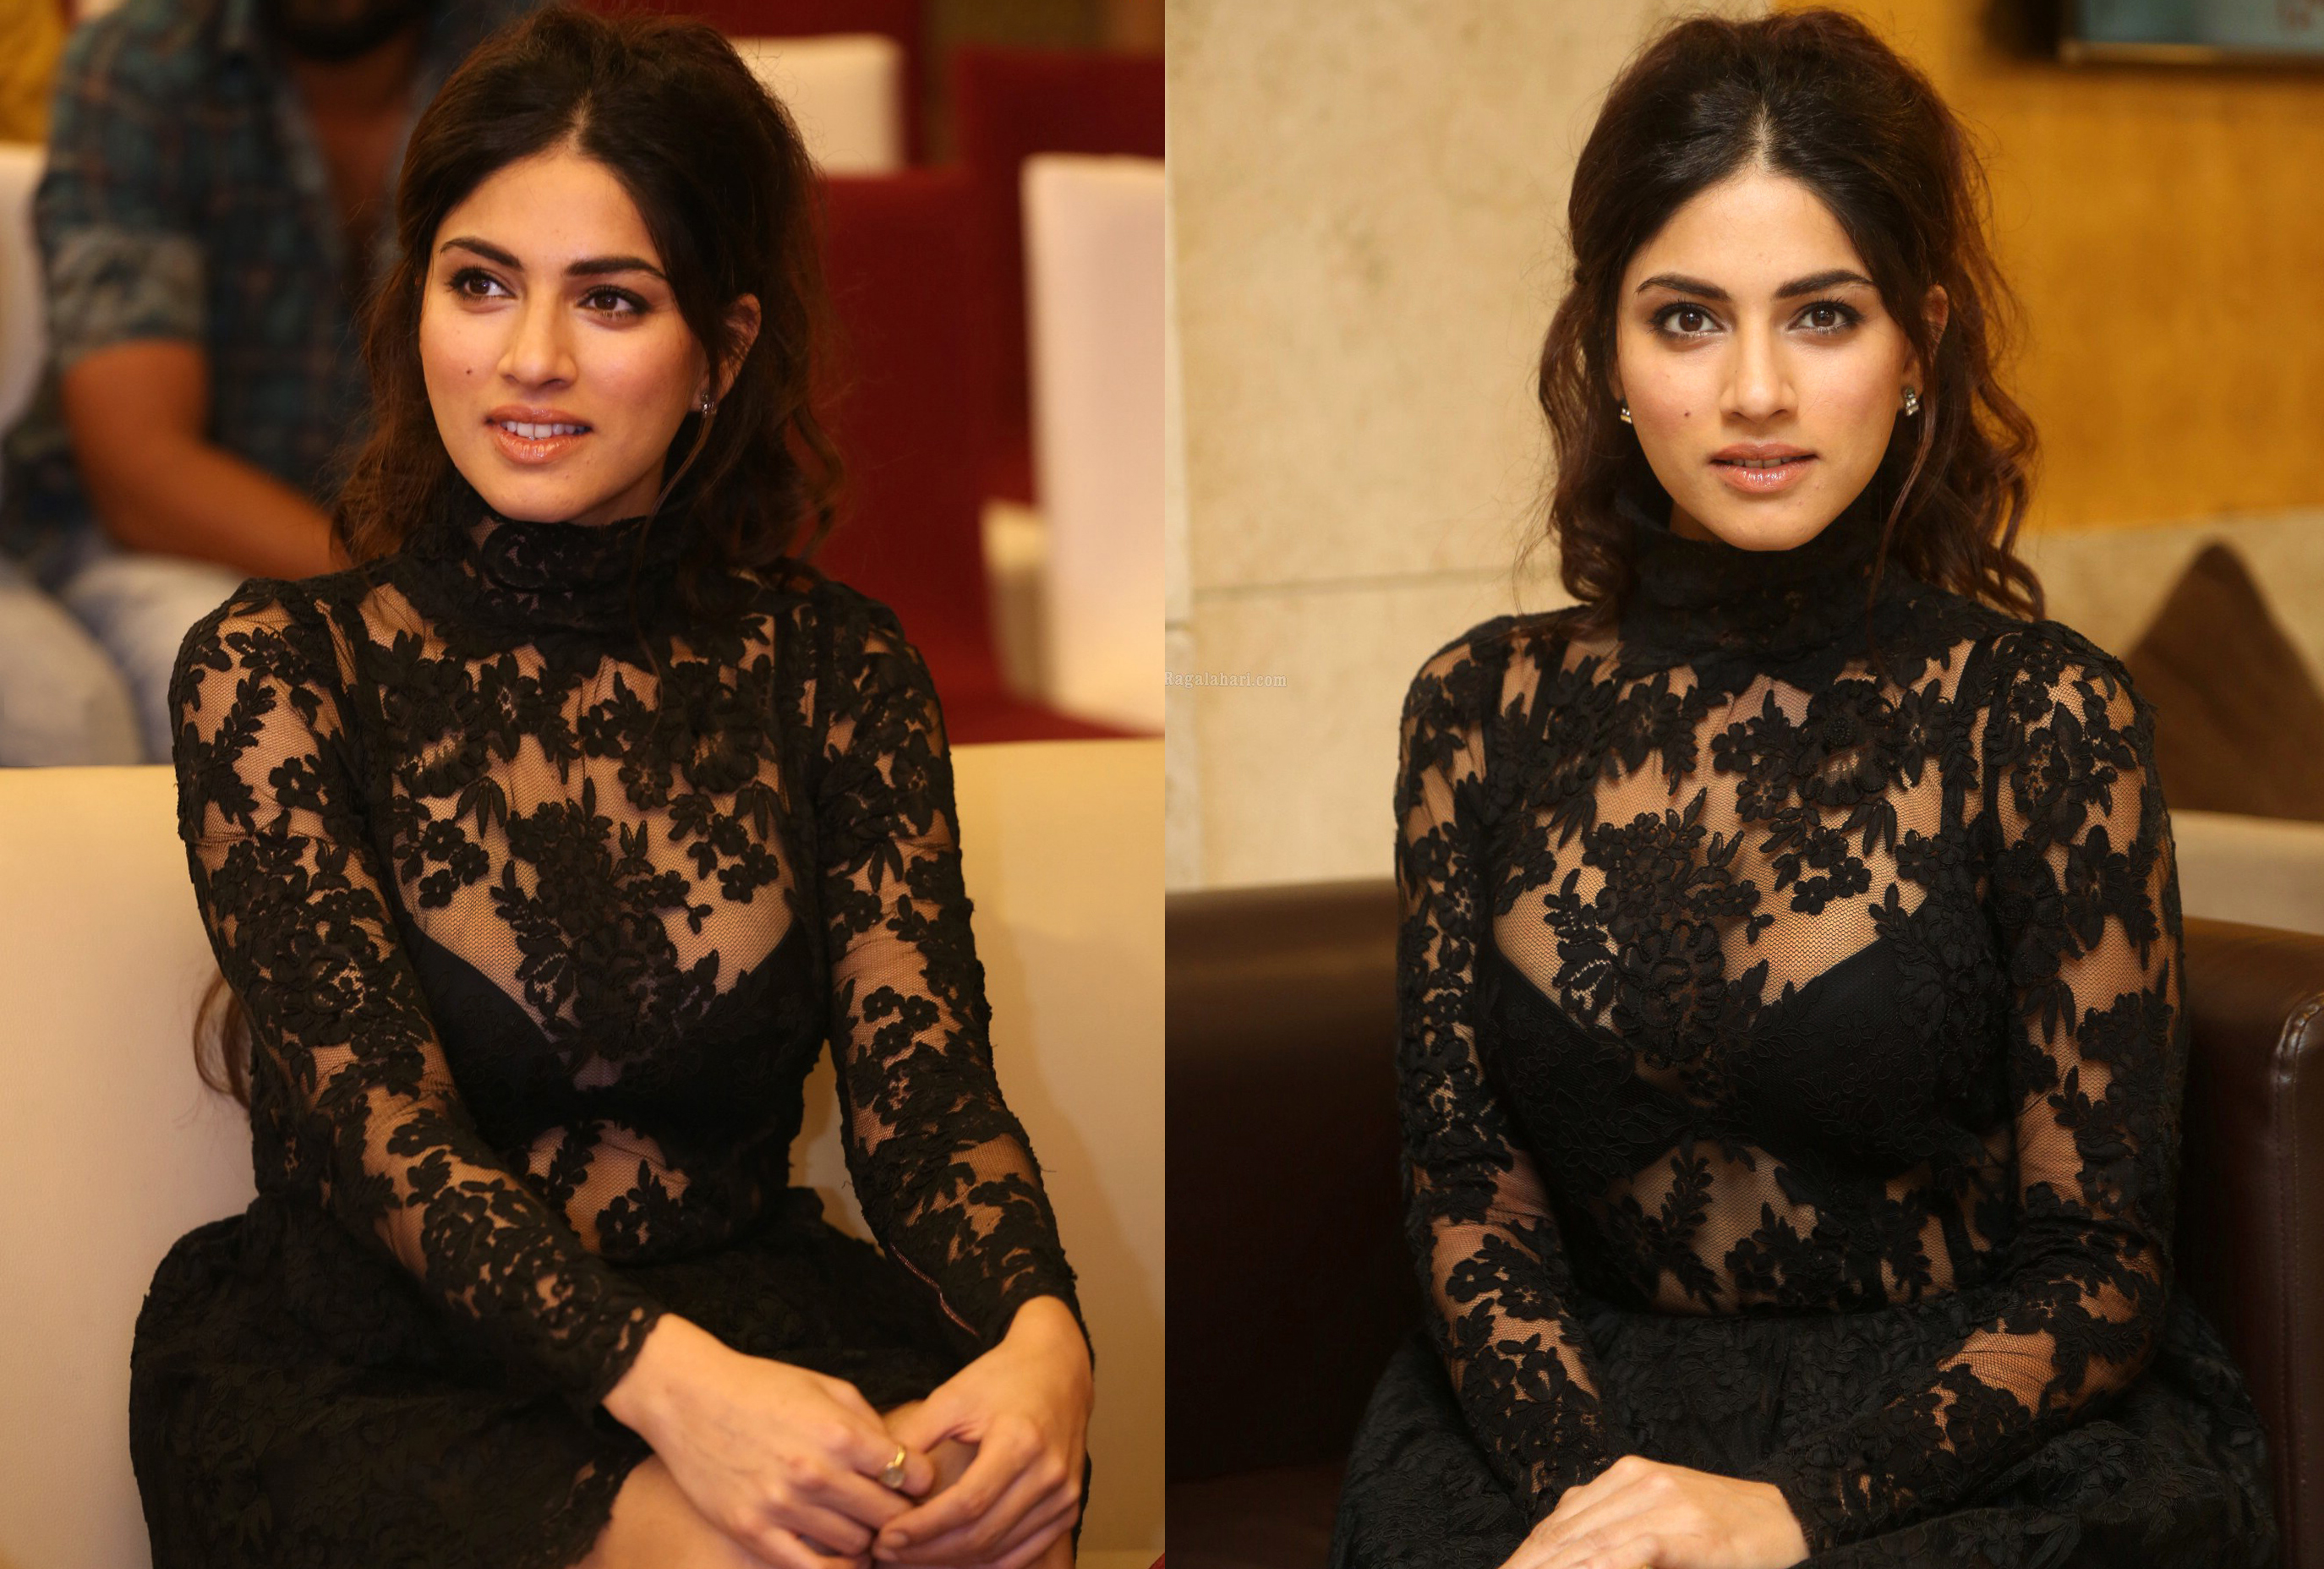 SAPNA PABBI DRESSED BY RAQUEL BALENCIA, DURING HER NEW FILM